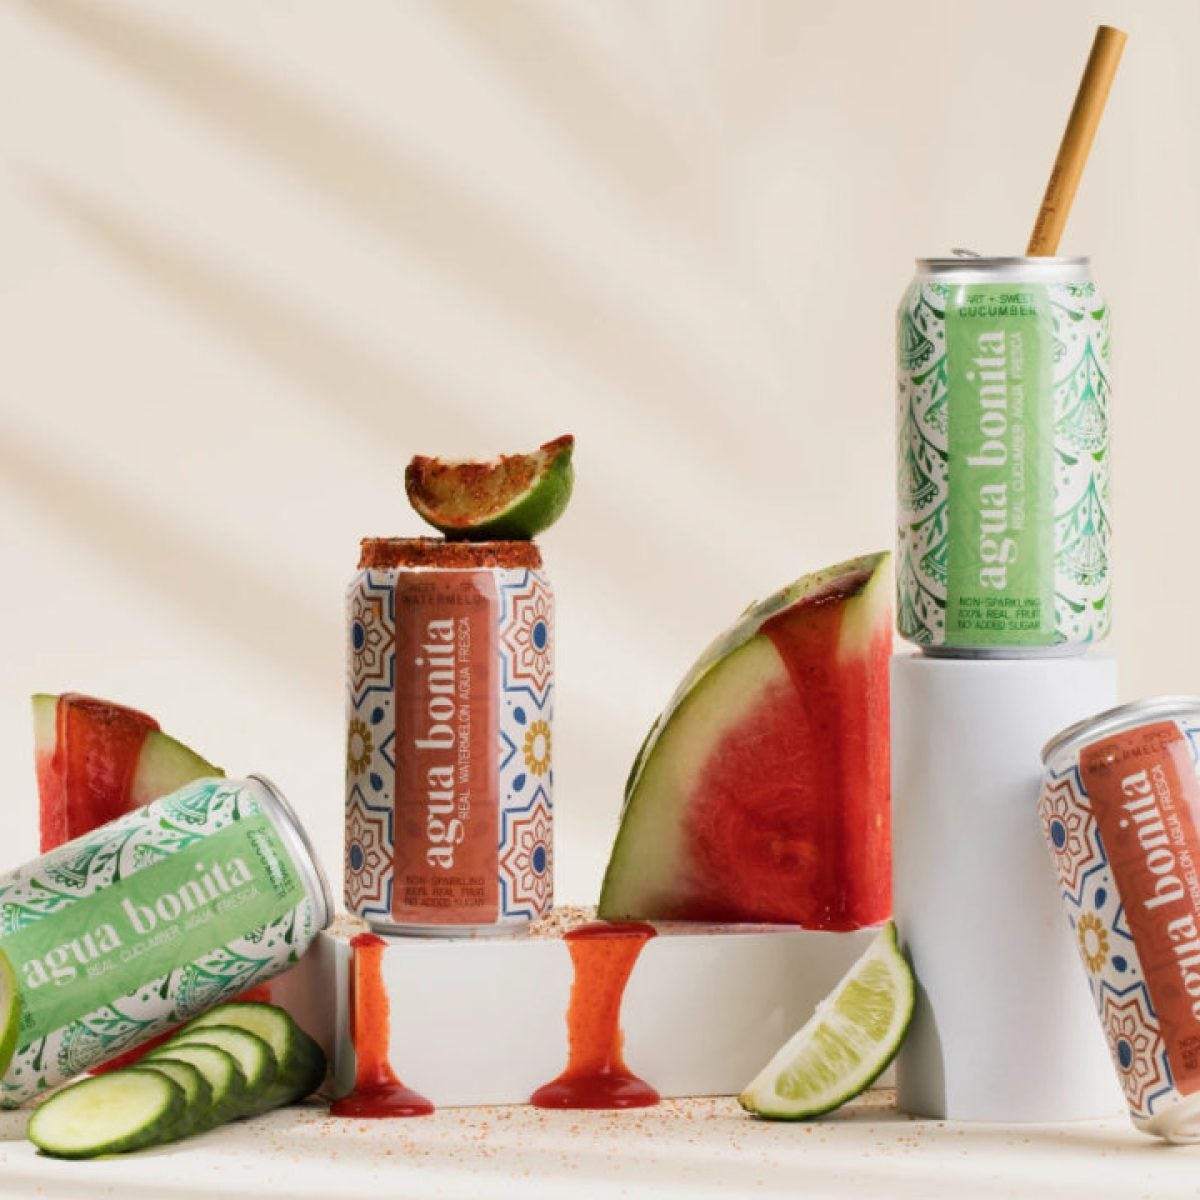 Agua Bonita Becomes First Afro-Latina-Owned Beverage Brand To Raise $2M